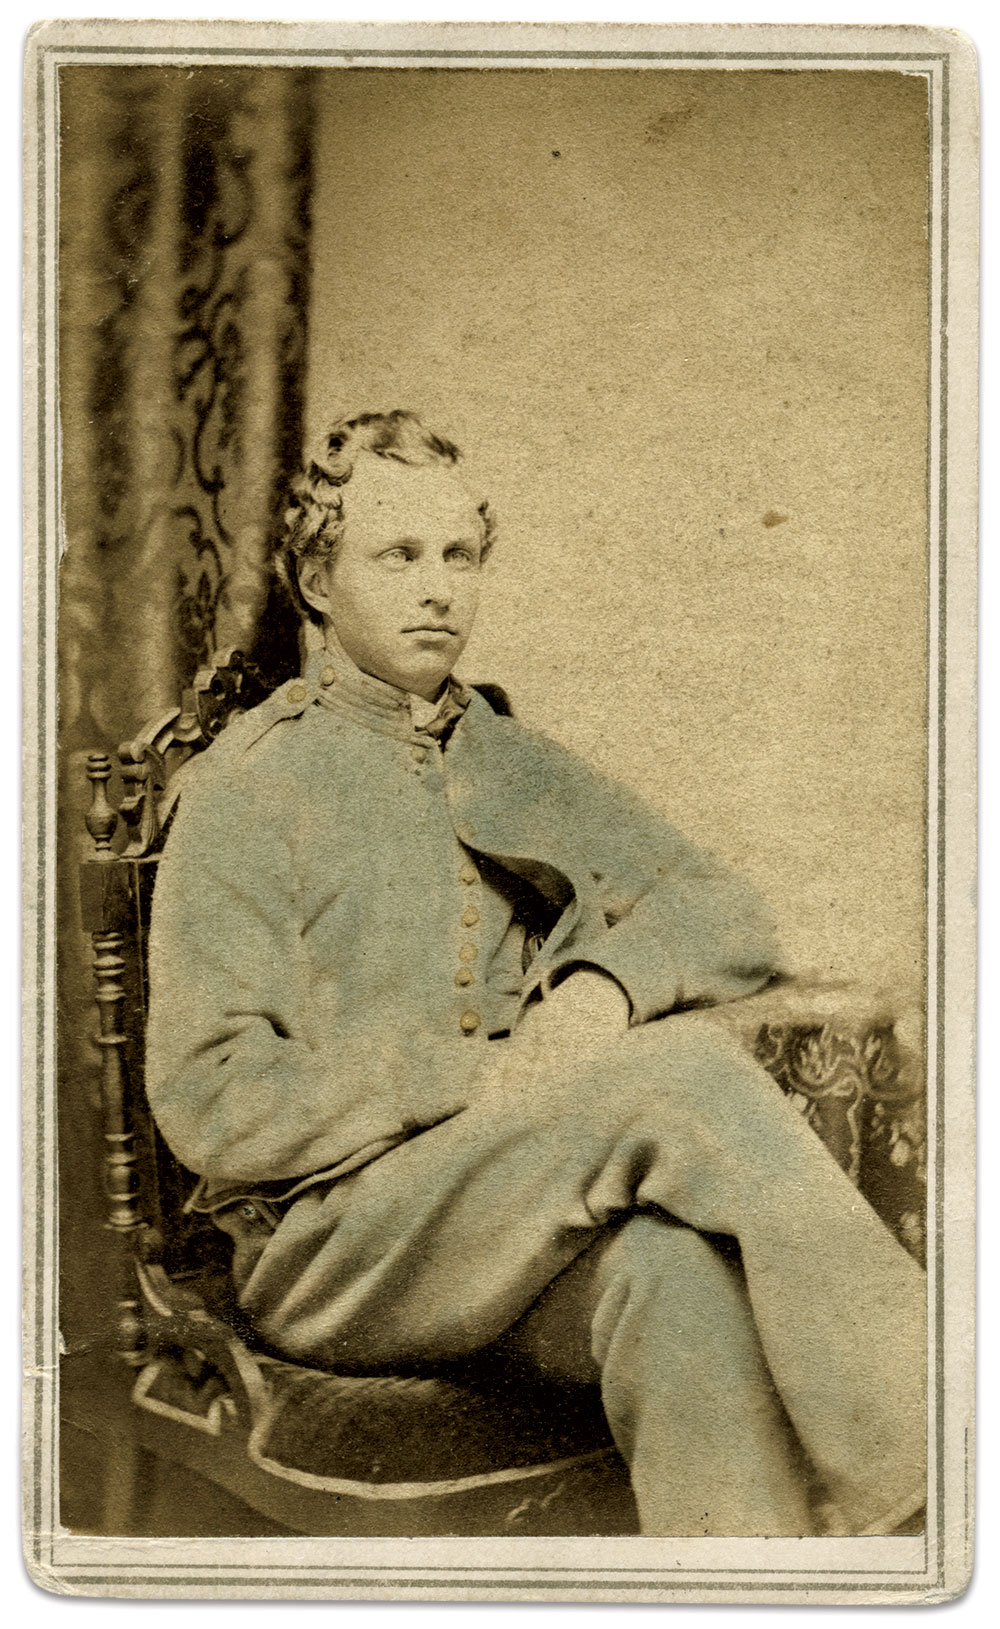 George Washington Tucker, pictured as a private in the 246th Company, 1st Battalion, Veteran Reserve Corps. Carte de visite by C. Miller of Burlington, Vt. John Gibson Collection.